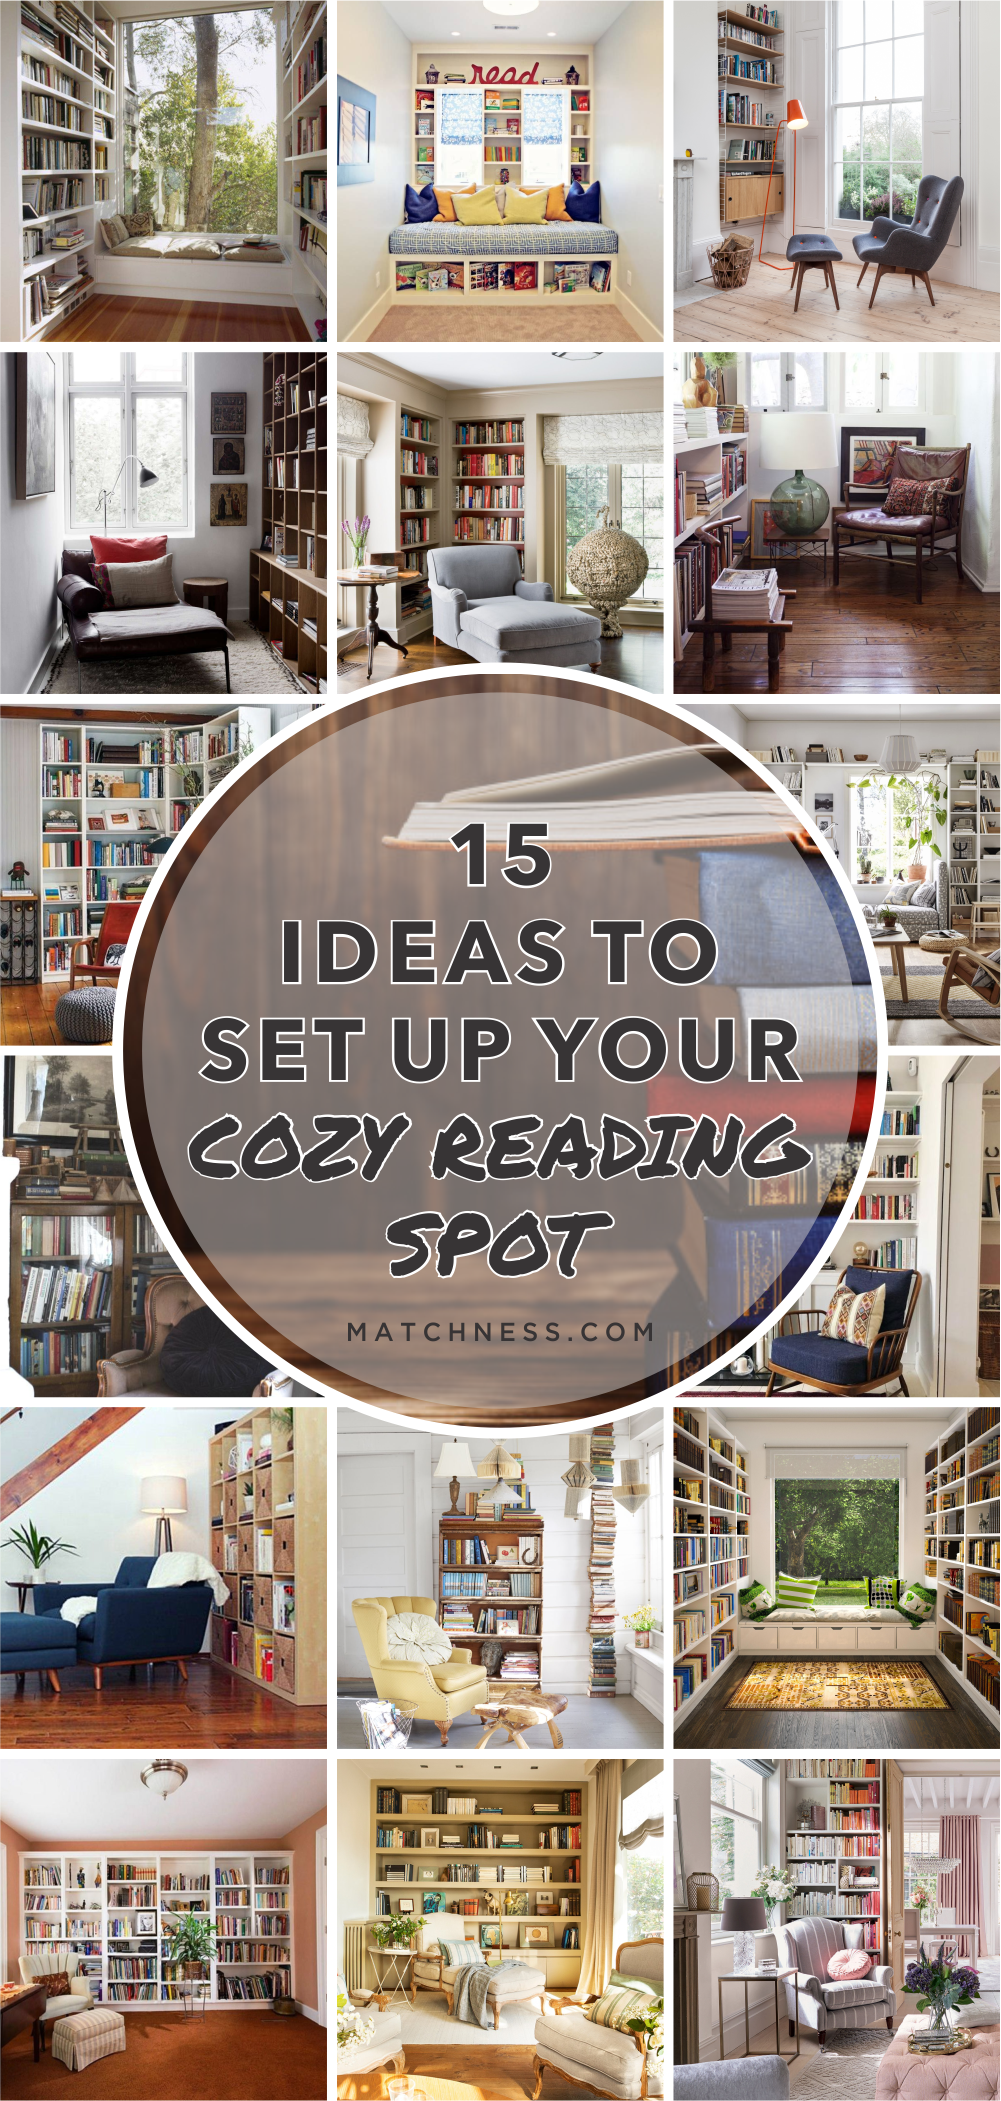 15-ideas-to-set-up-your-cozy-reading-spot-1